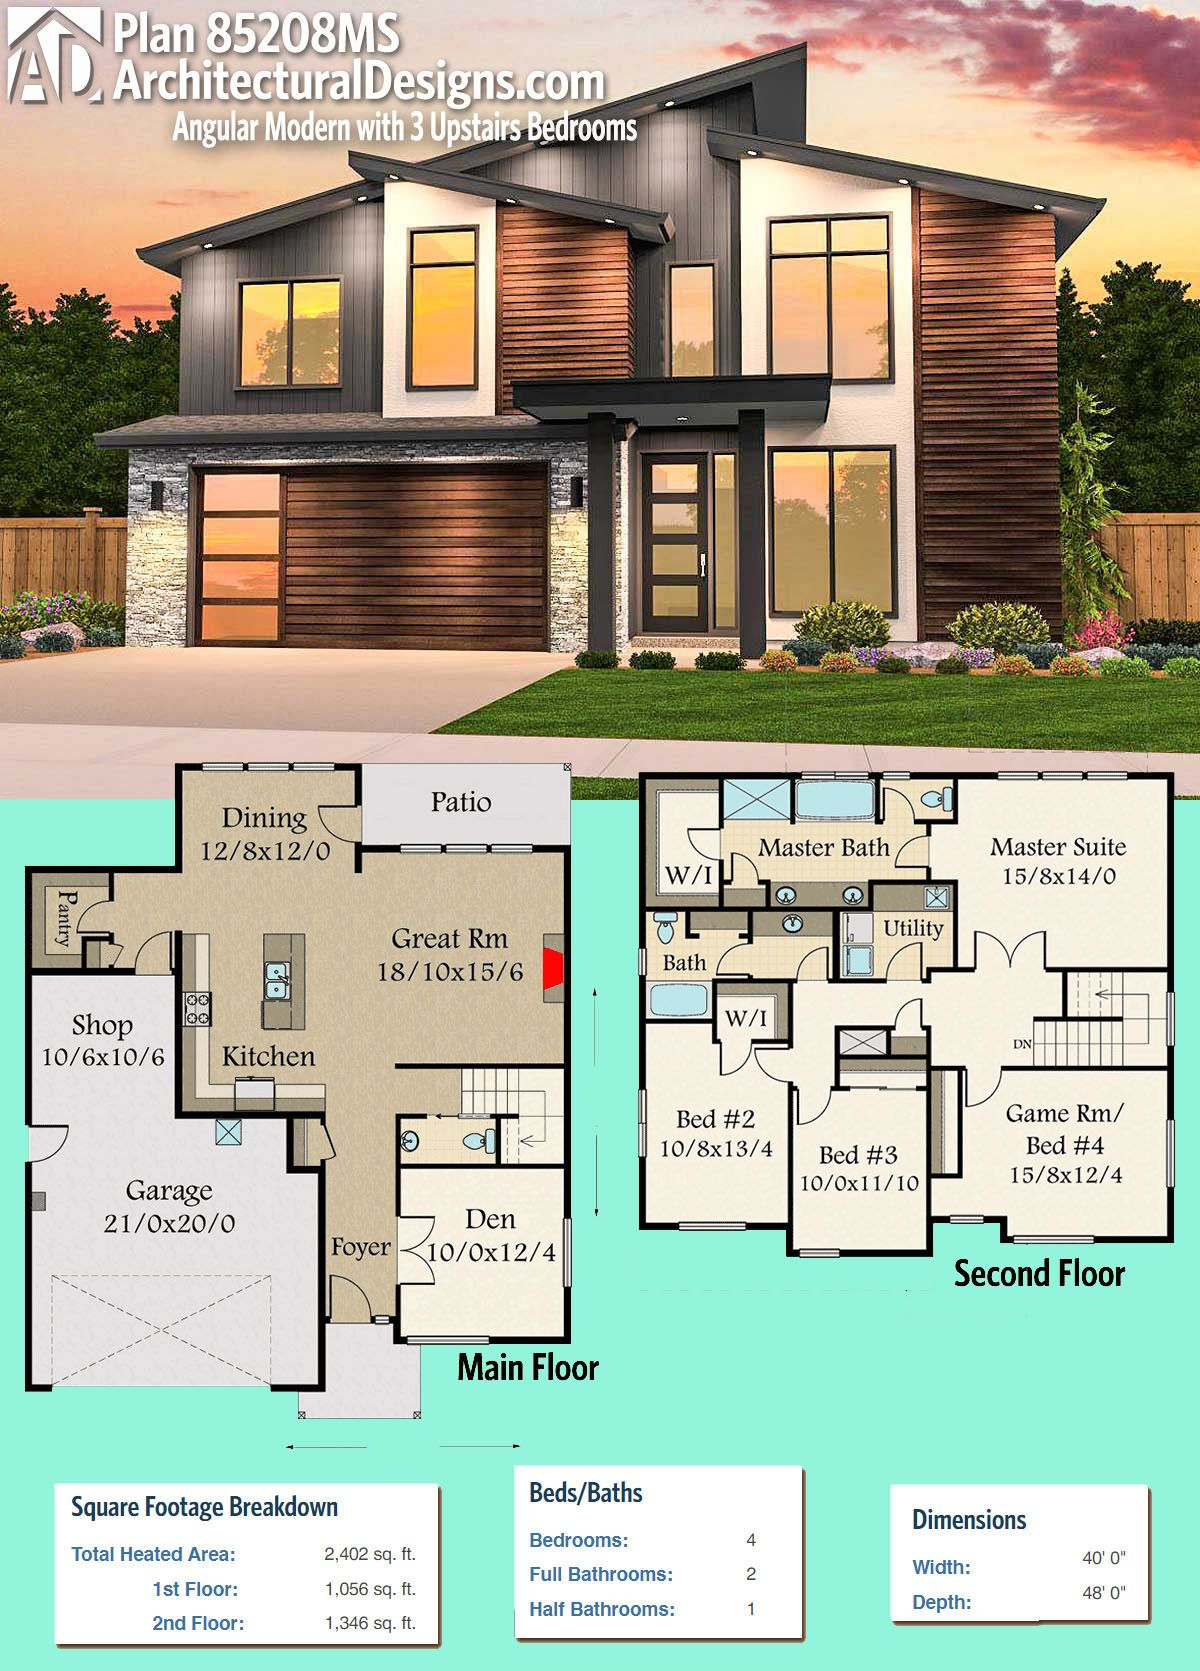 Plan 85208MS: Angular Modern with 3 Upstairs Bedrooms | Pinterest ...